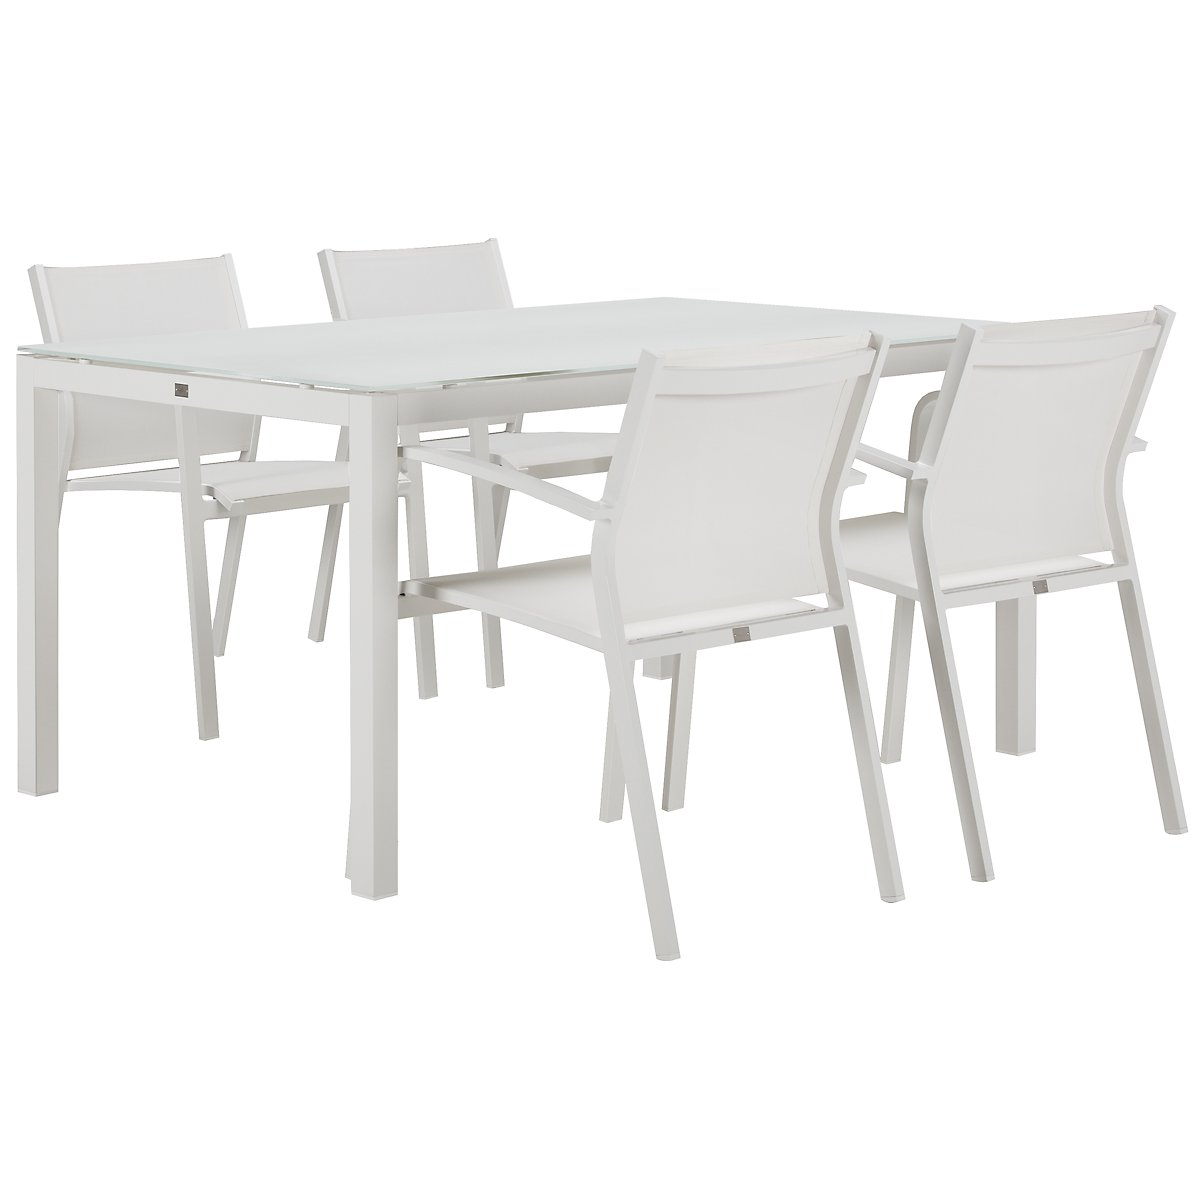 "Lisbon White 60"" Rectangular Table & 4 Chairs"